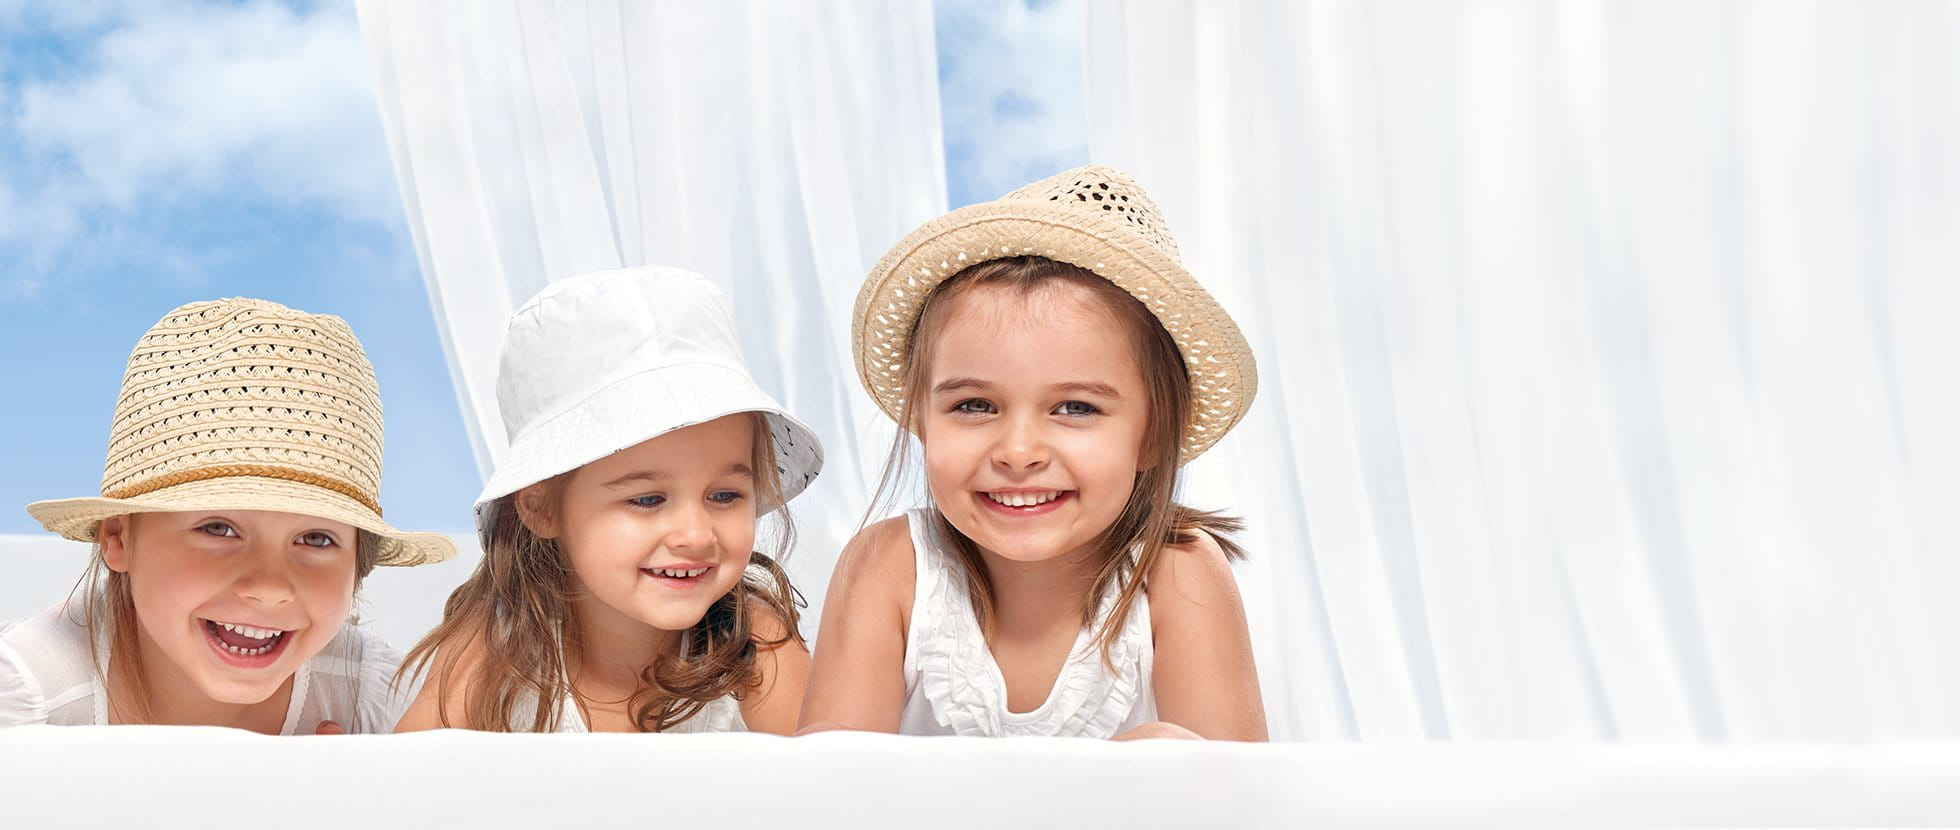 Sun protection for babies and children